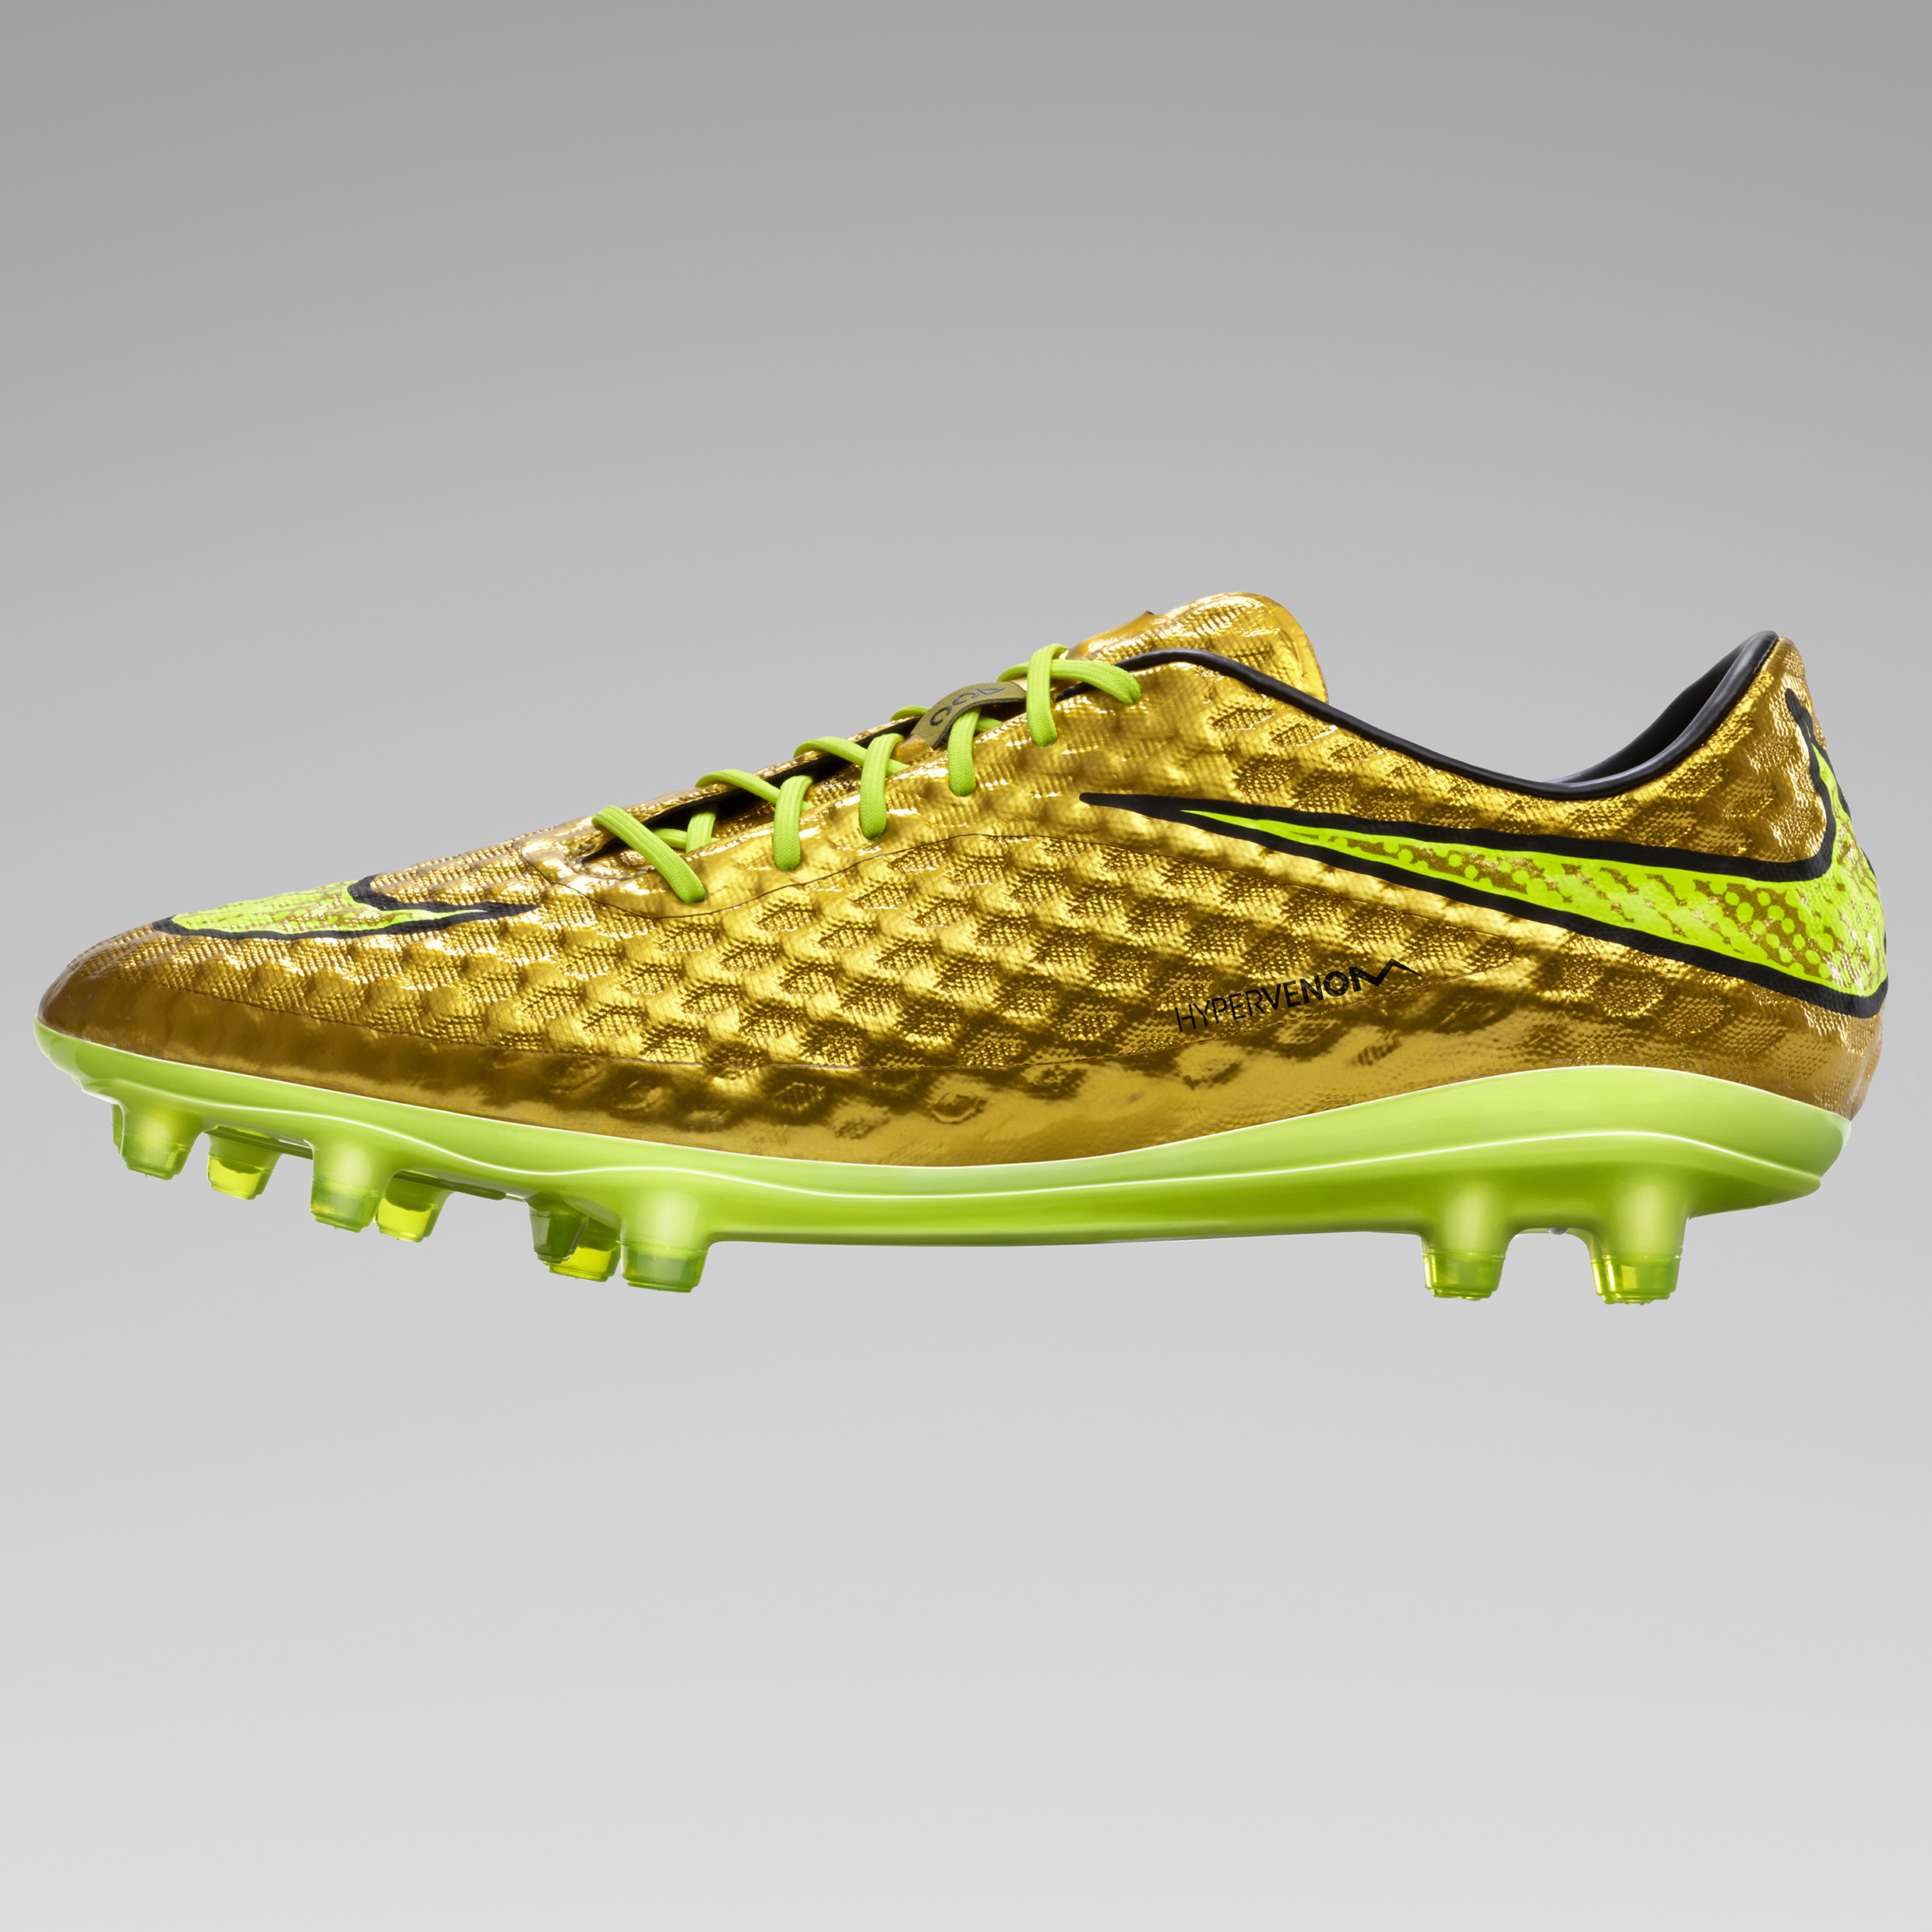 Nike Hypervenom Phantom Prem Firm Ground Football Boots Gold